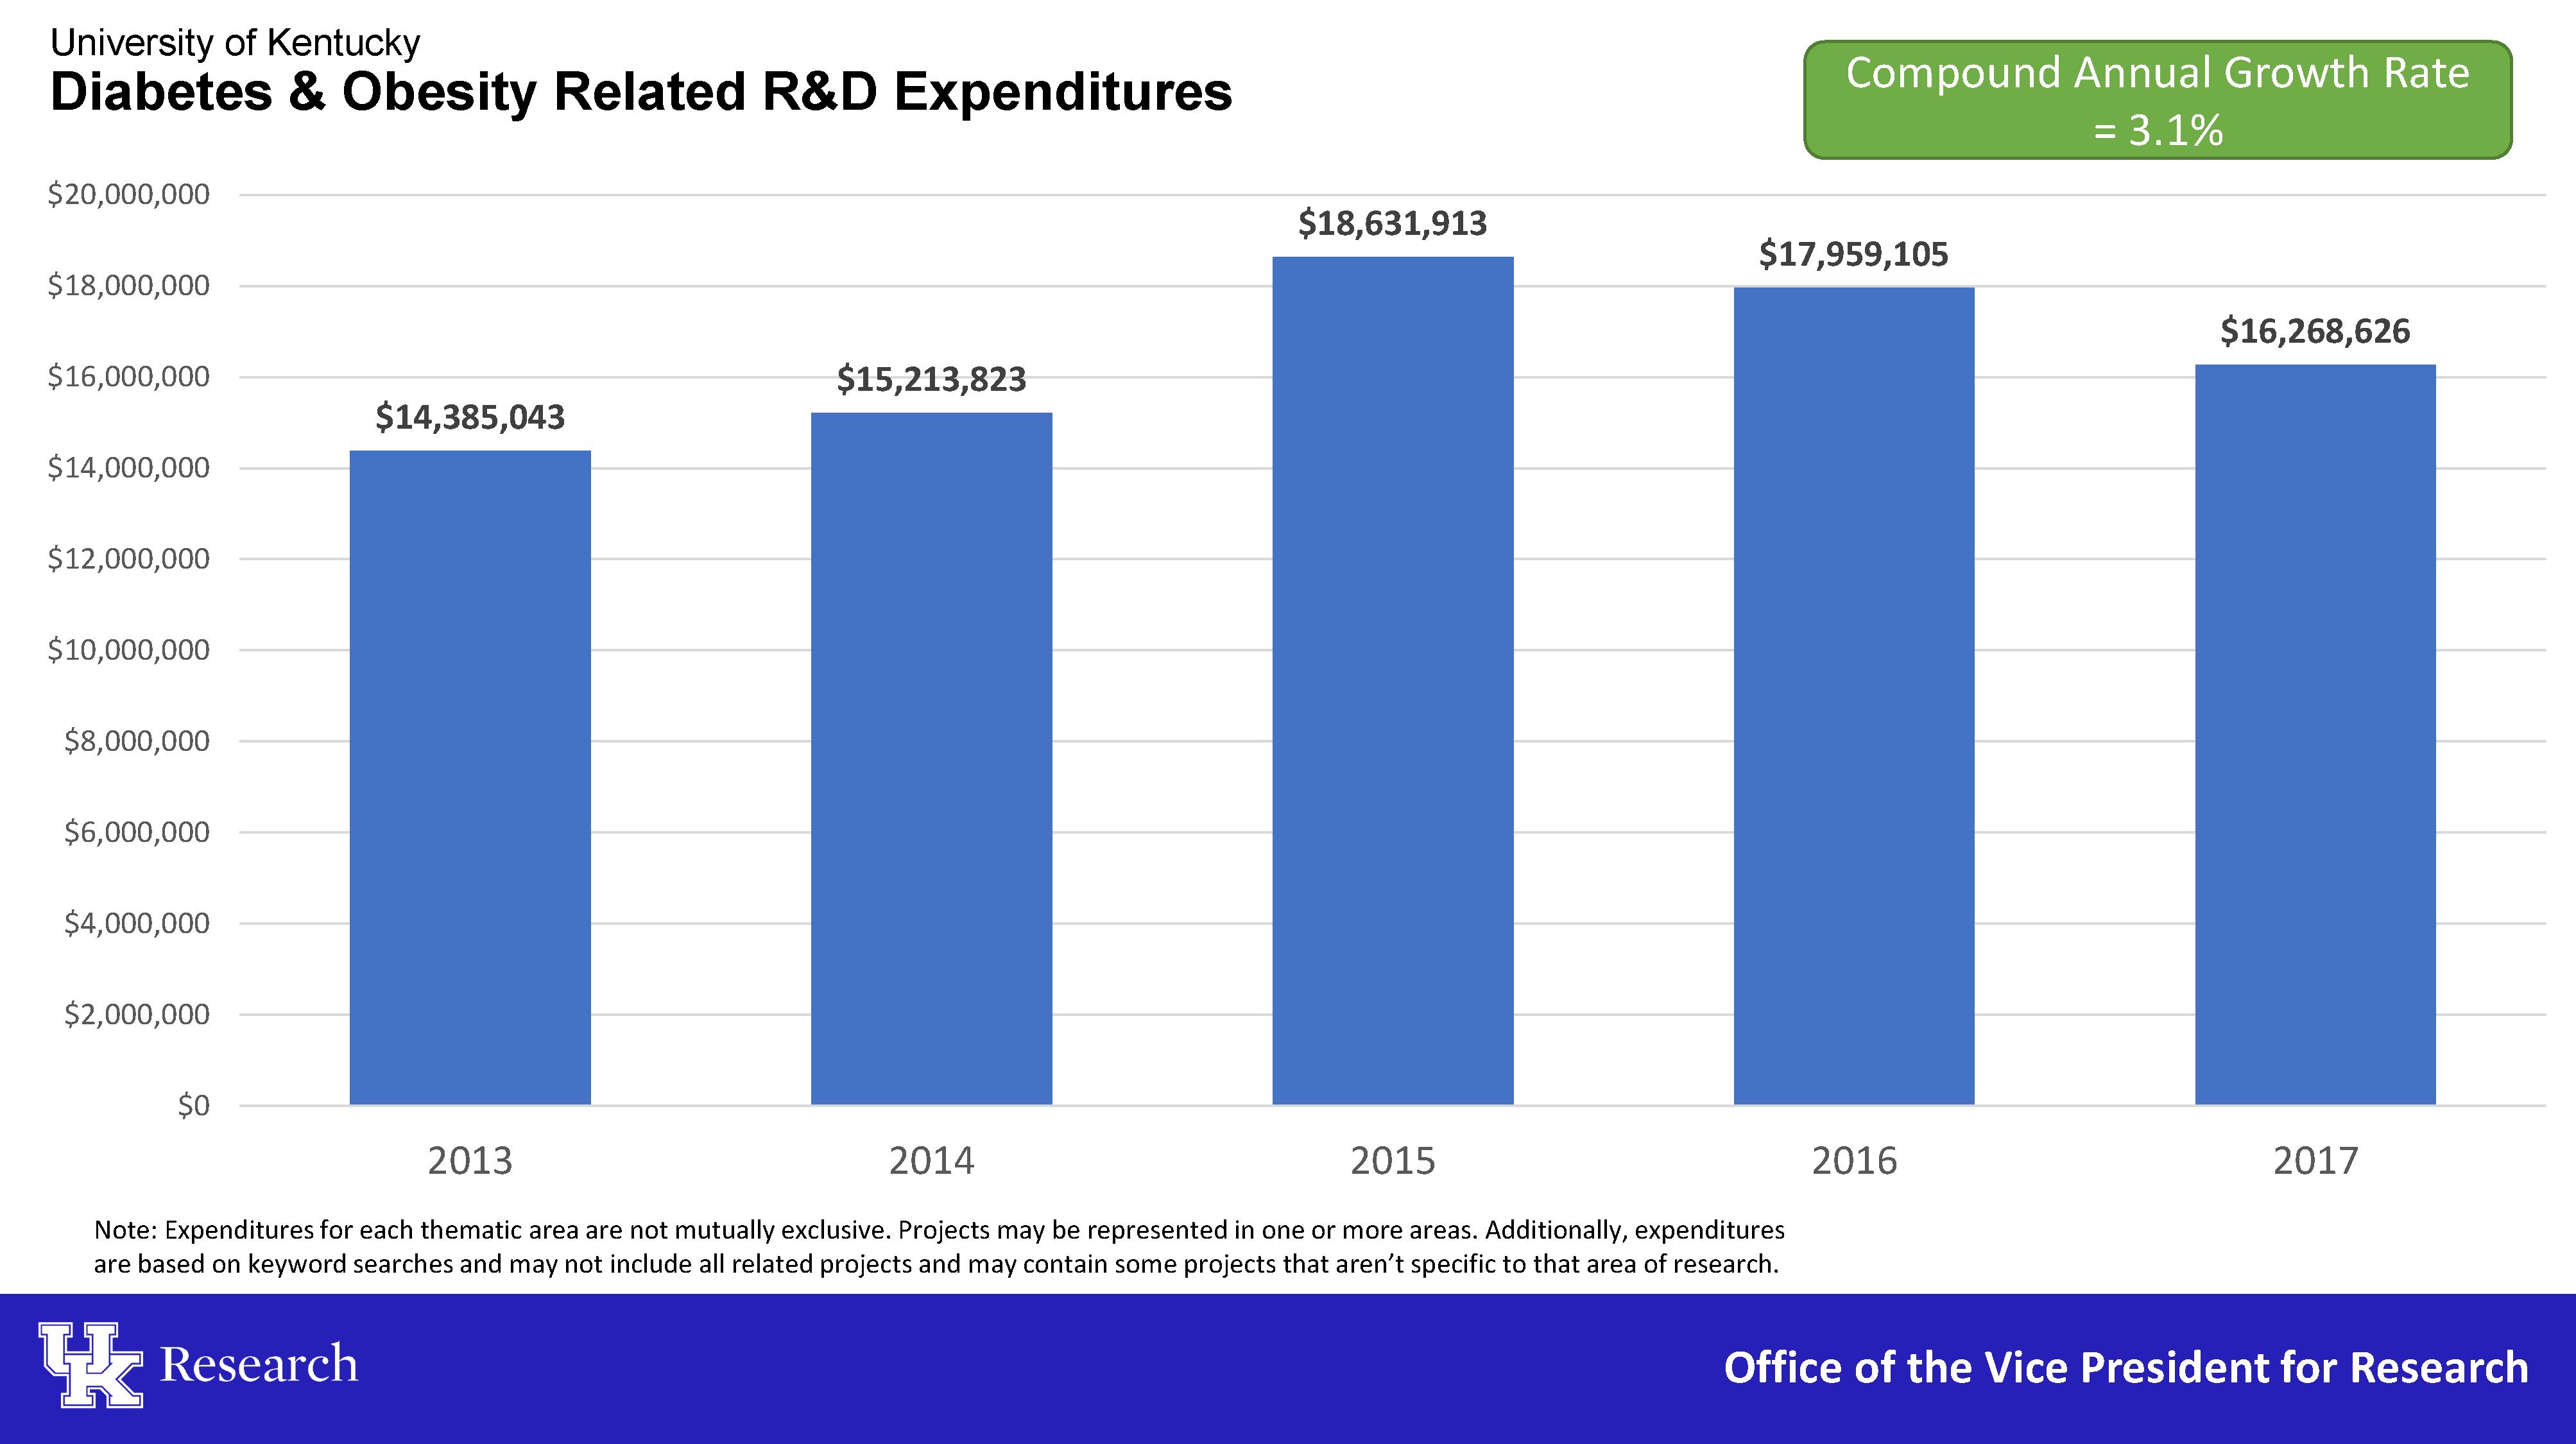 Diabetes & Obesity Related R&D Expenditures 2013-2017